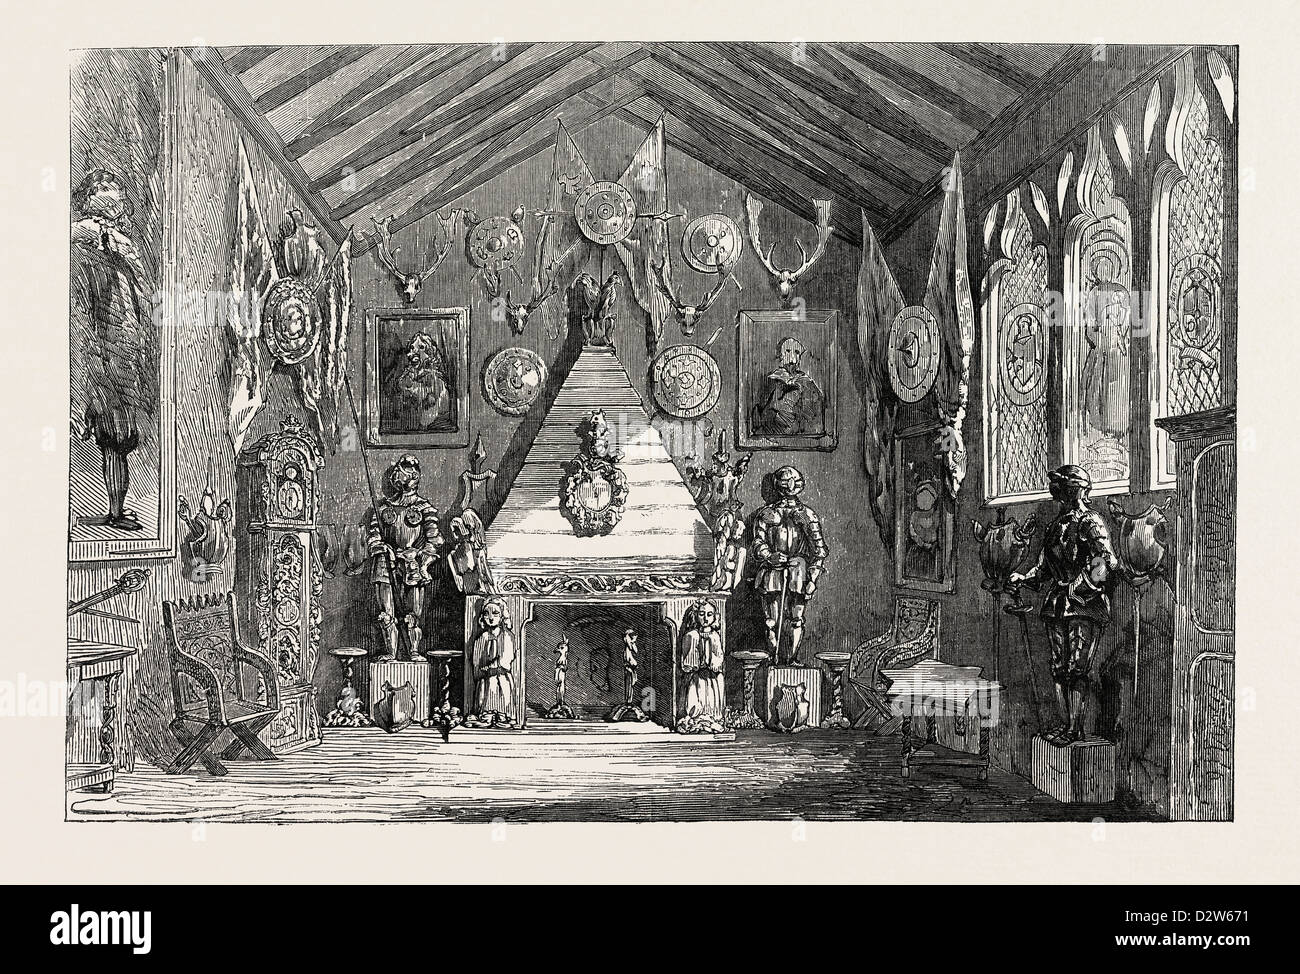 THE OLDHAM LYCEUM EDUCATIONAL AND INDUSTRIAL EXHIBITION THE BARONIAL HALL 1854 - Stock Image